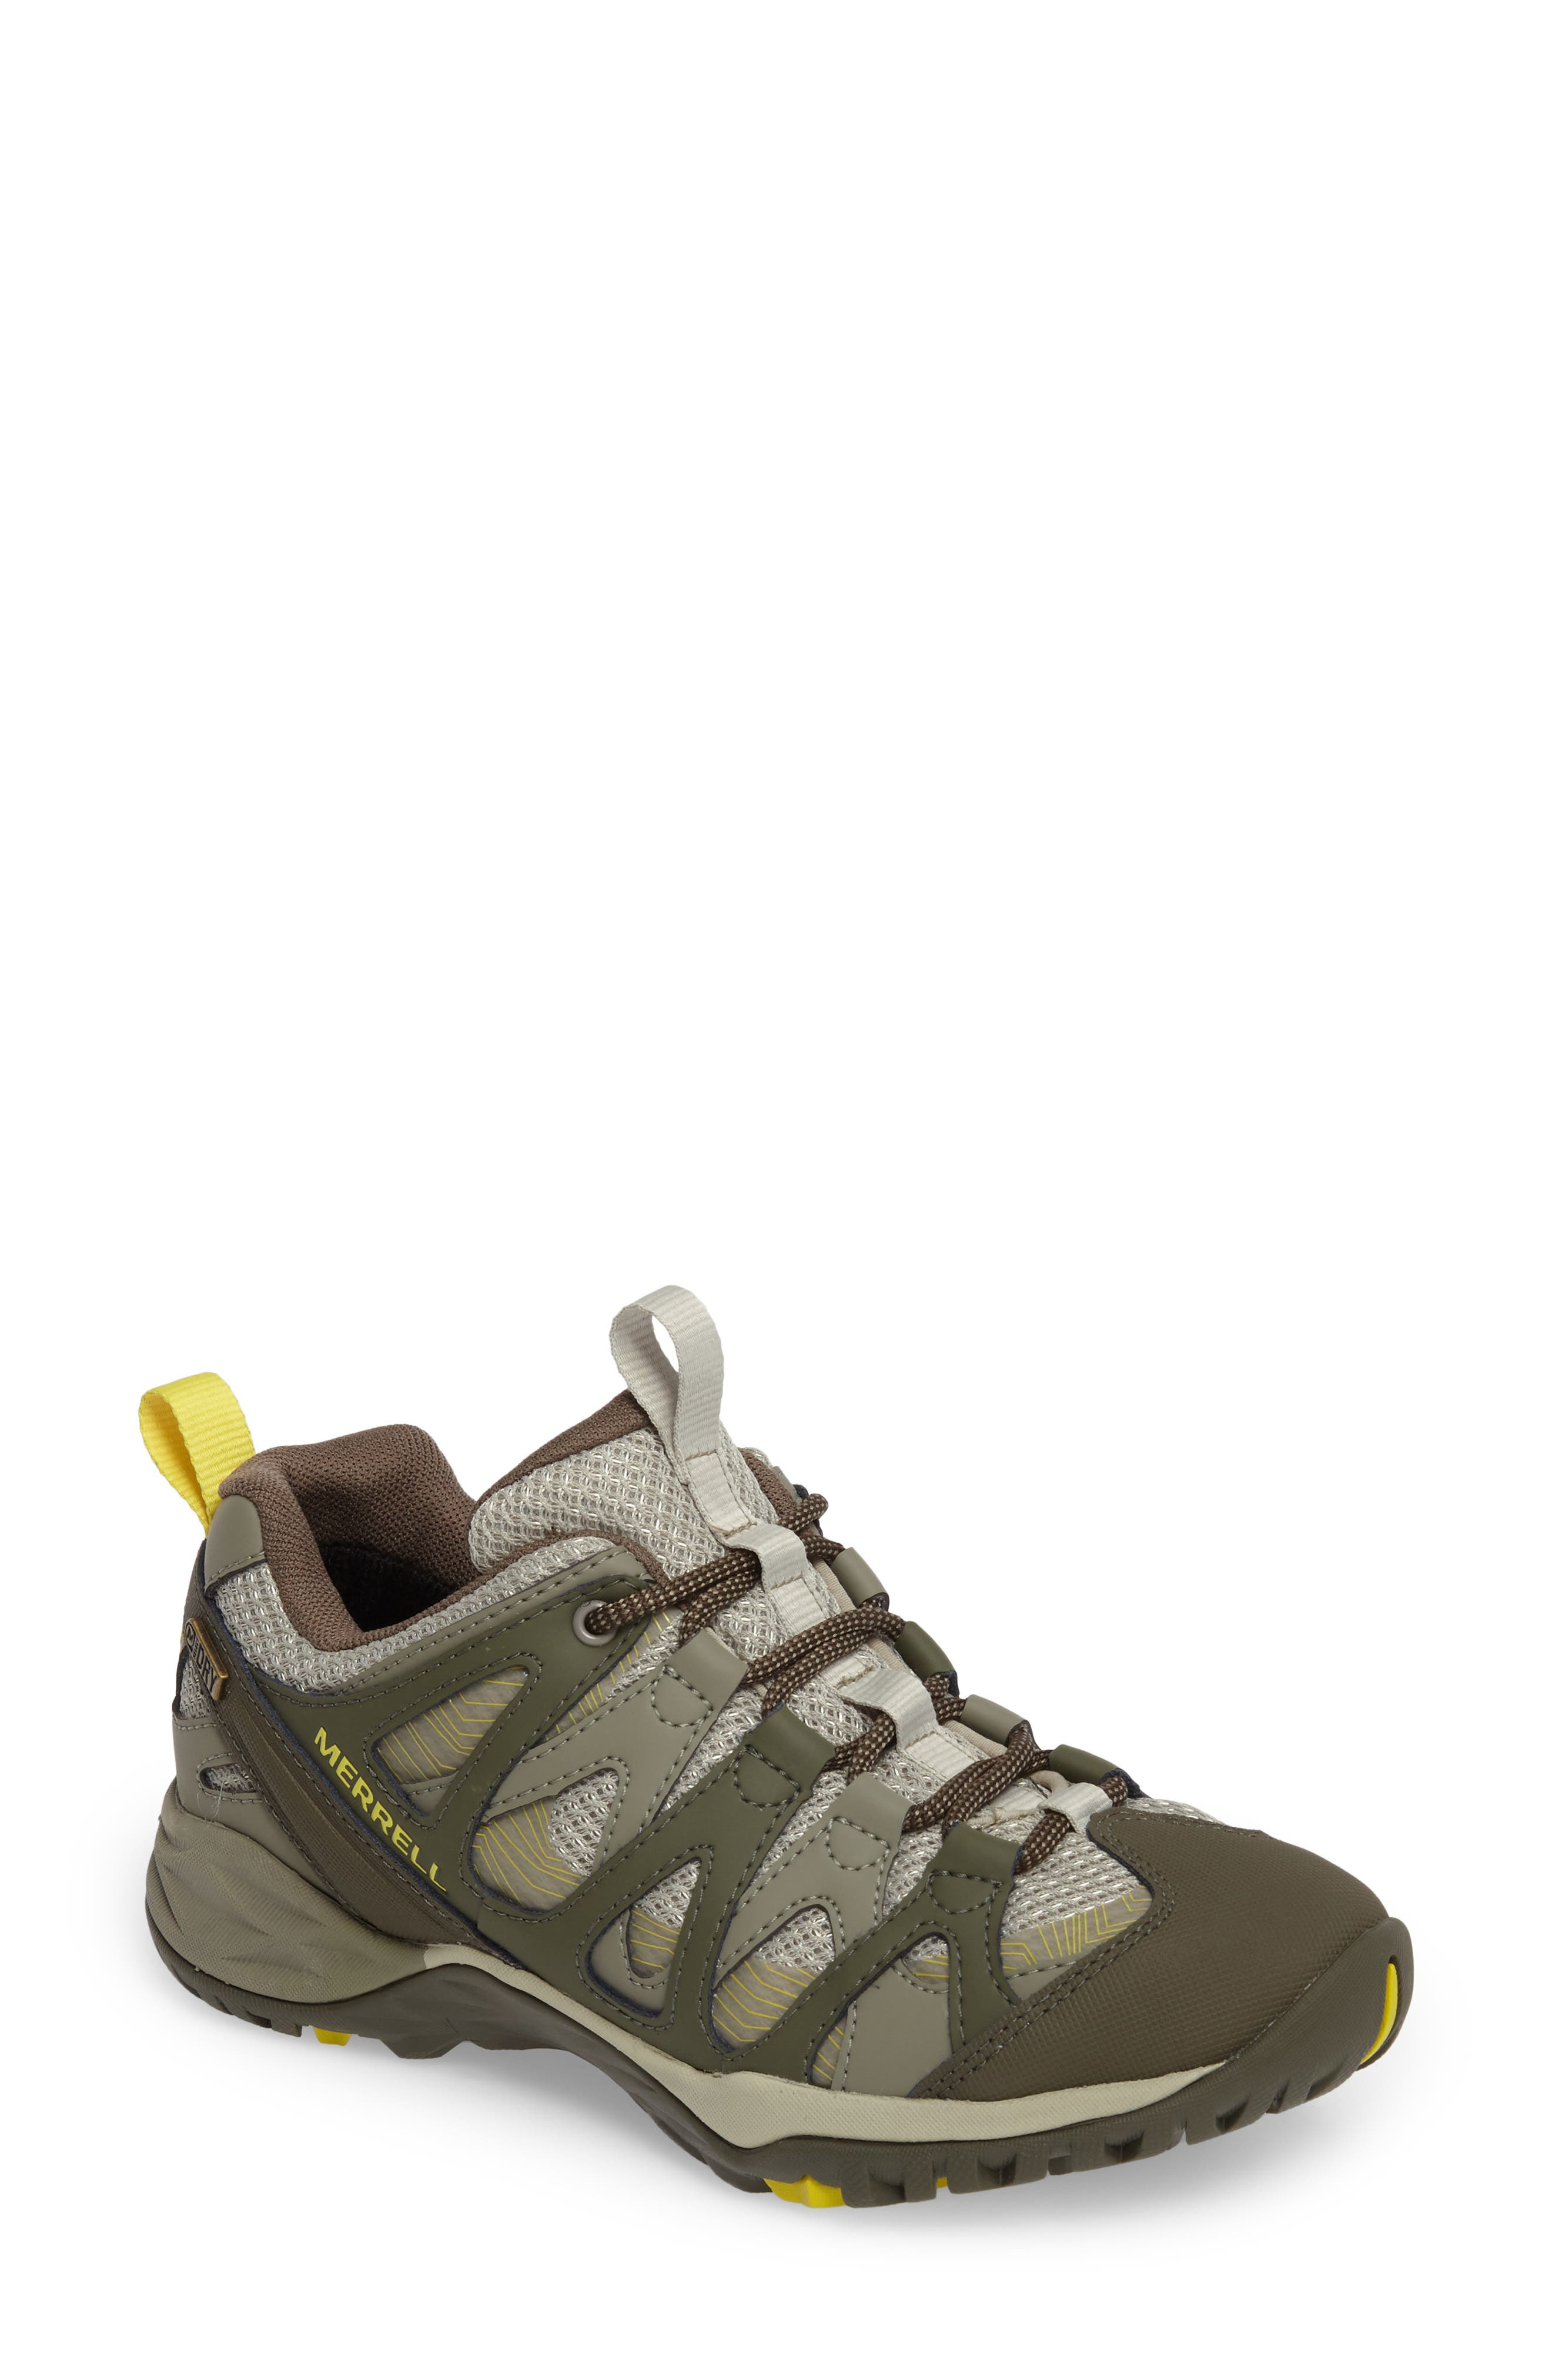 Siren Hex Waterproof Sneaker,                         Main,                         color, 310